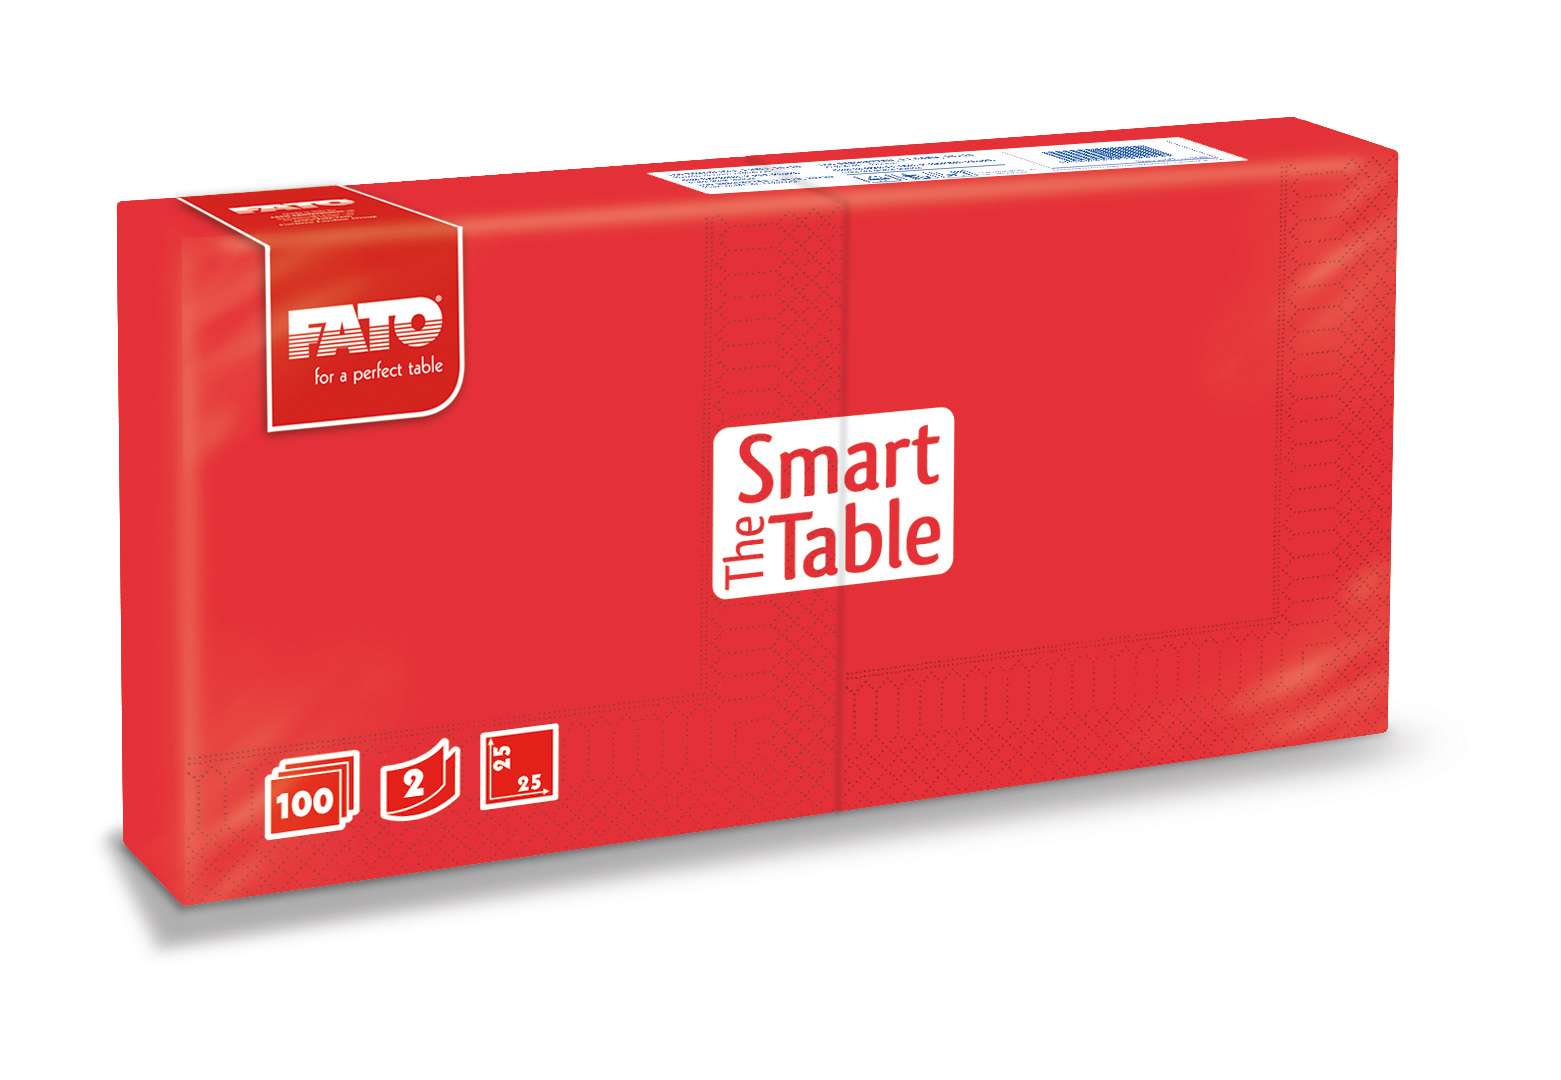 Ubrousky The Smart Table, 25x25cm, 2vr., Červené - 3800 ks